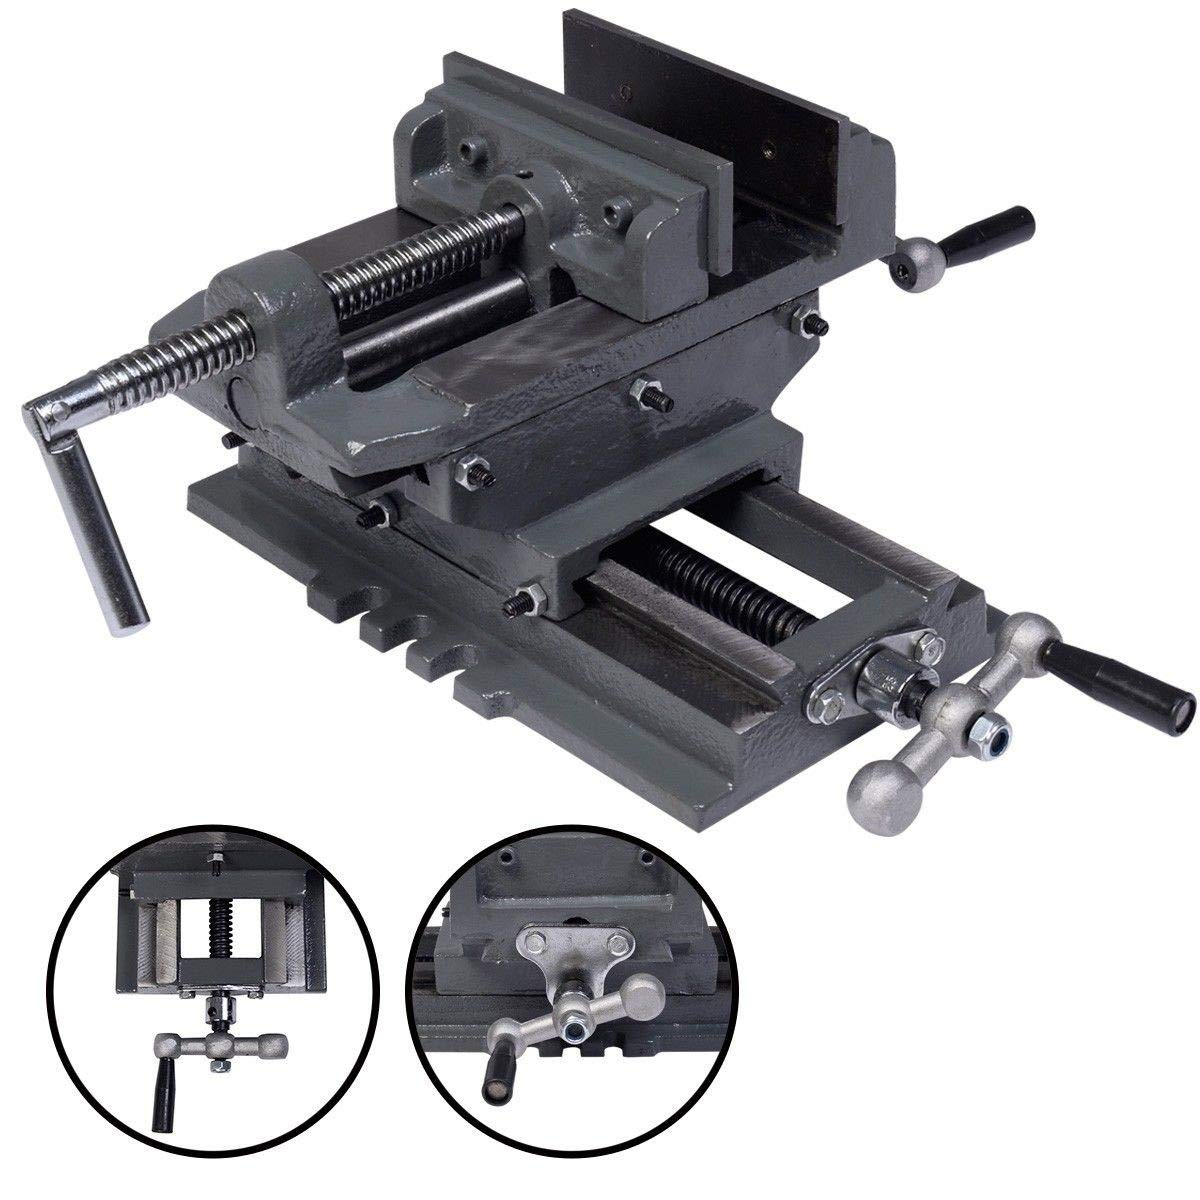 New 5'' Cross Drill Press Vise X-Y Clamp Machine Slide Metal Milling 2 Way HD